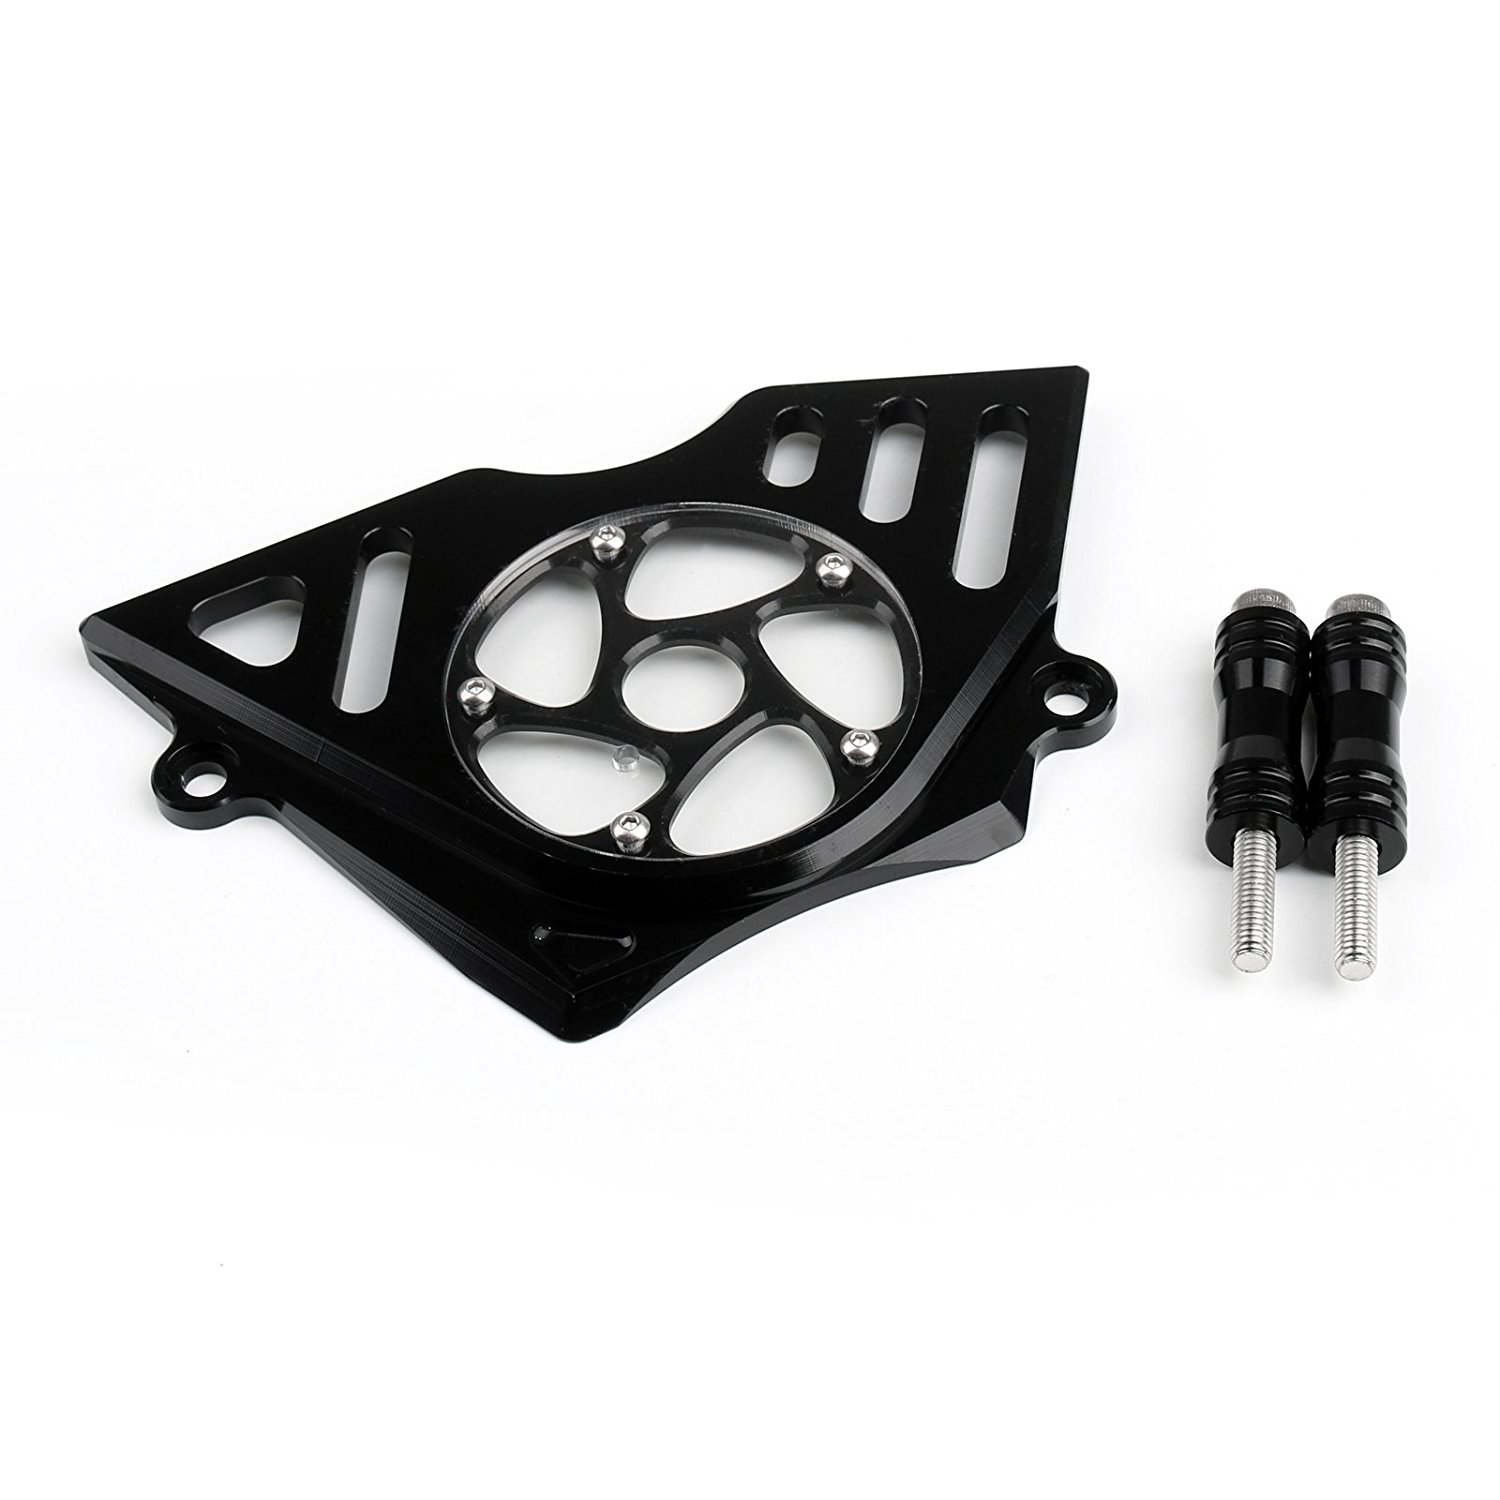 Areyourshop CNC Front Sprocket Chain Guard Cover For Honda CBR250R 2011-2014